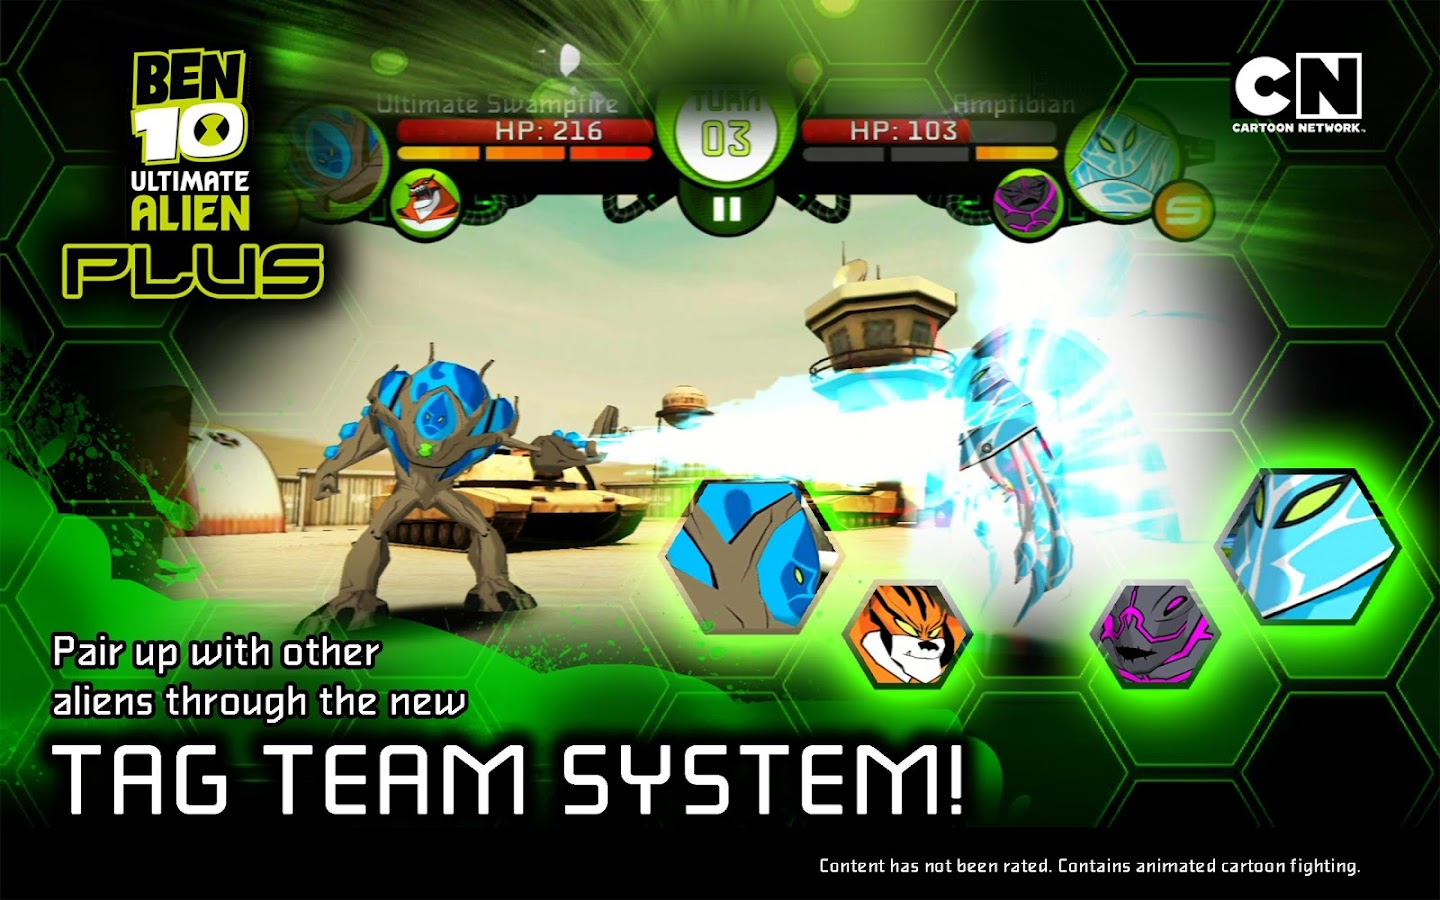 Ben 10 Xenodrome Plus  Android Apps on Google Play